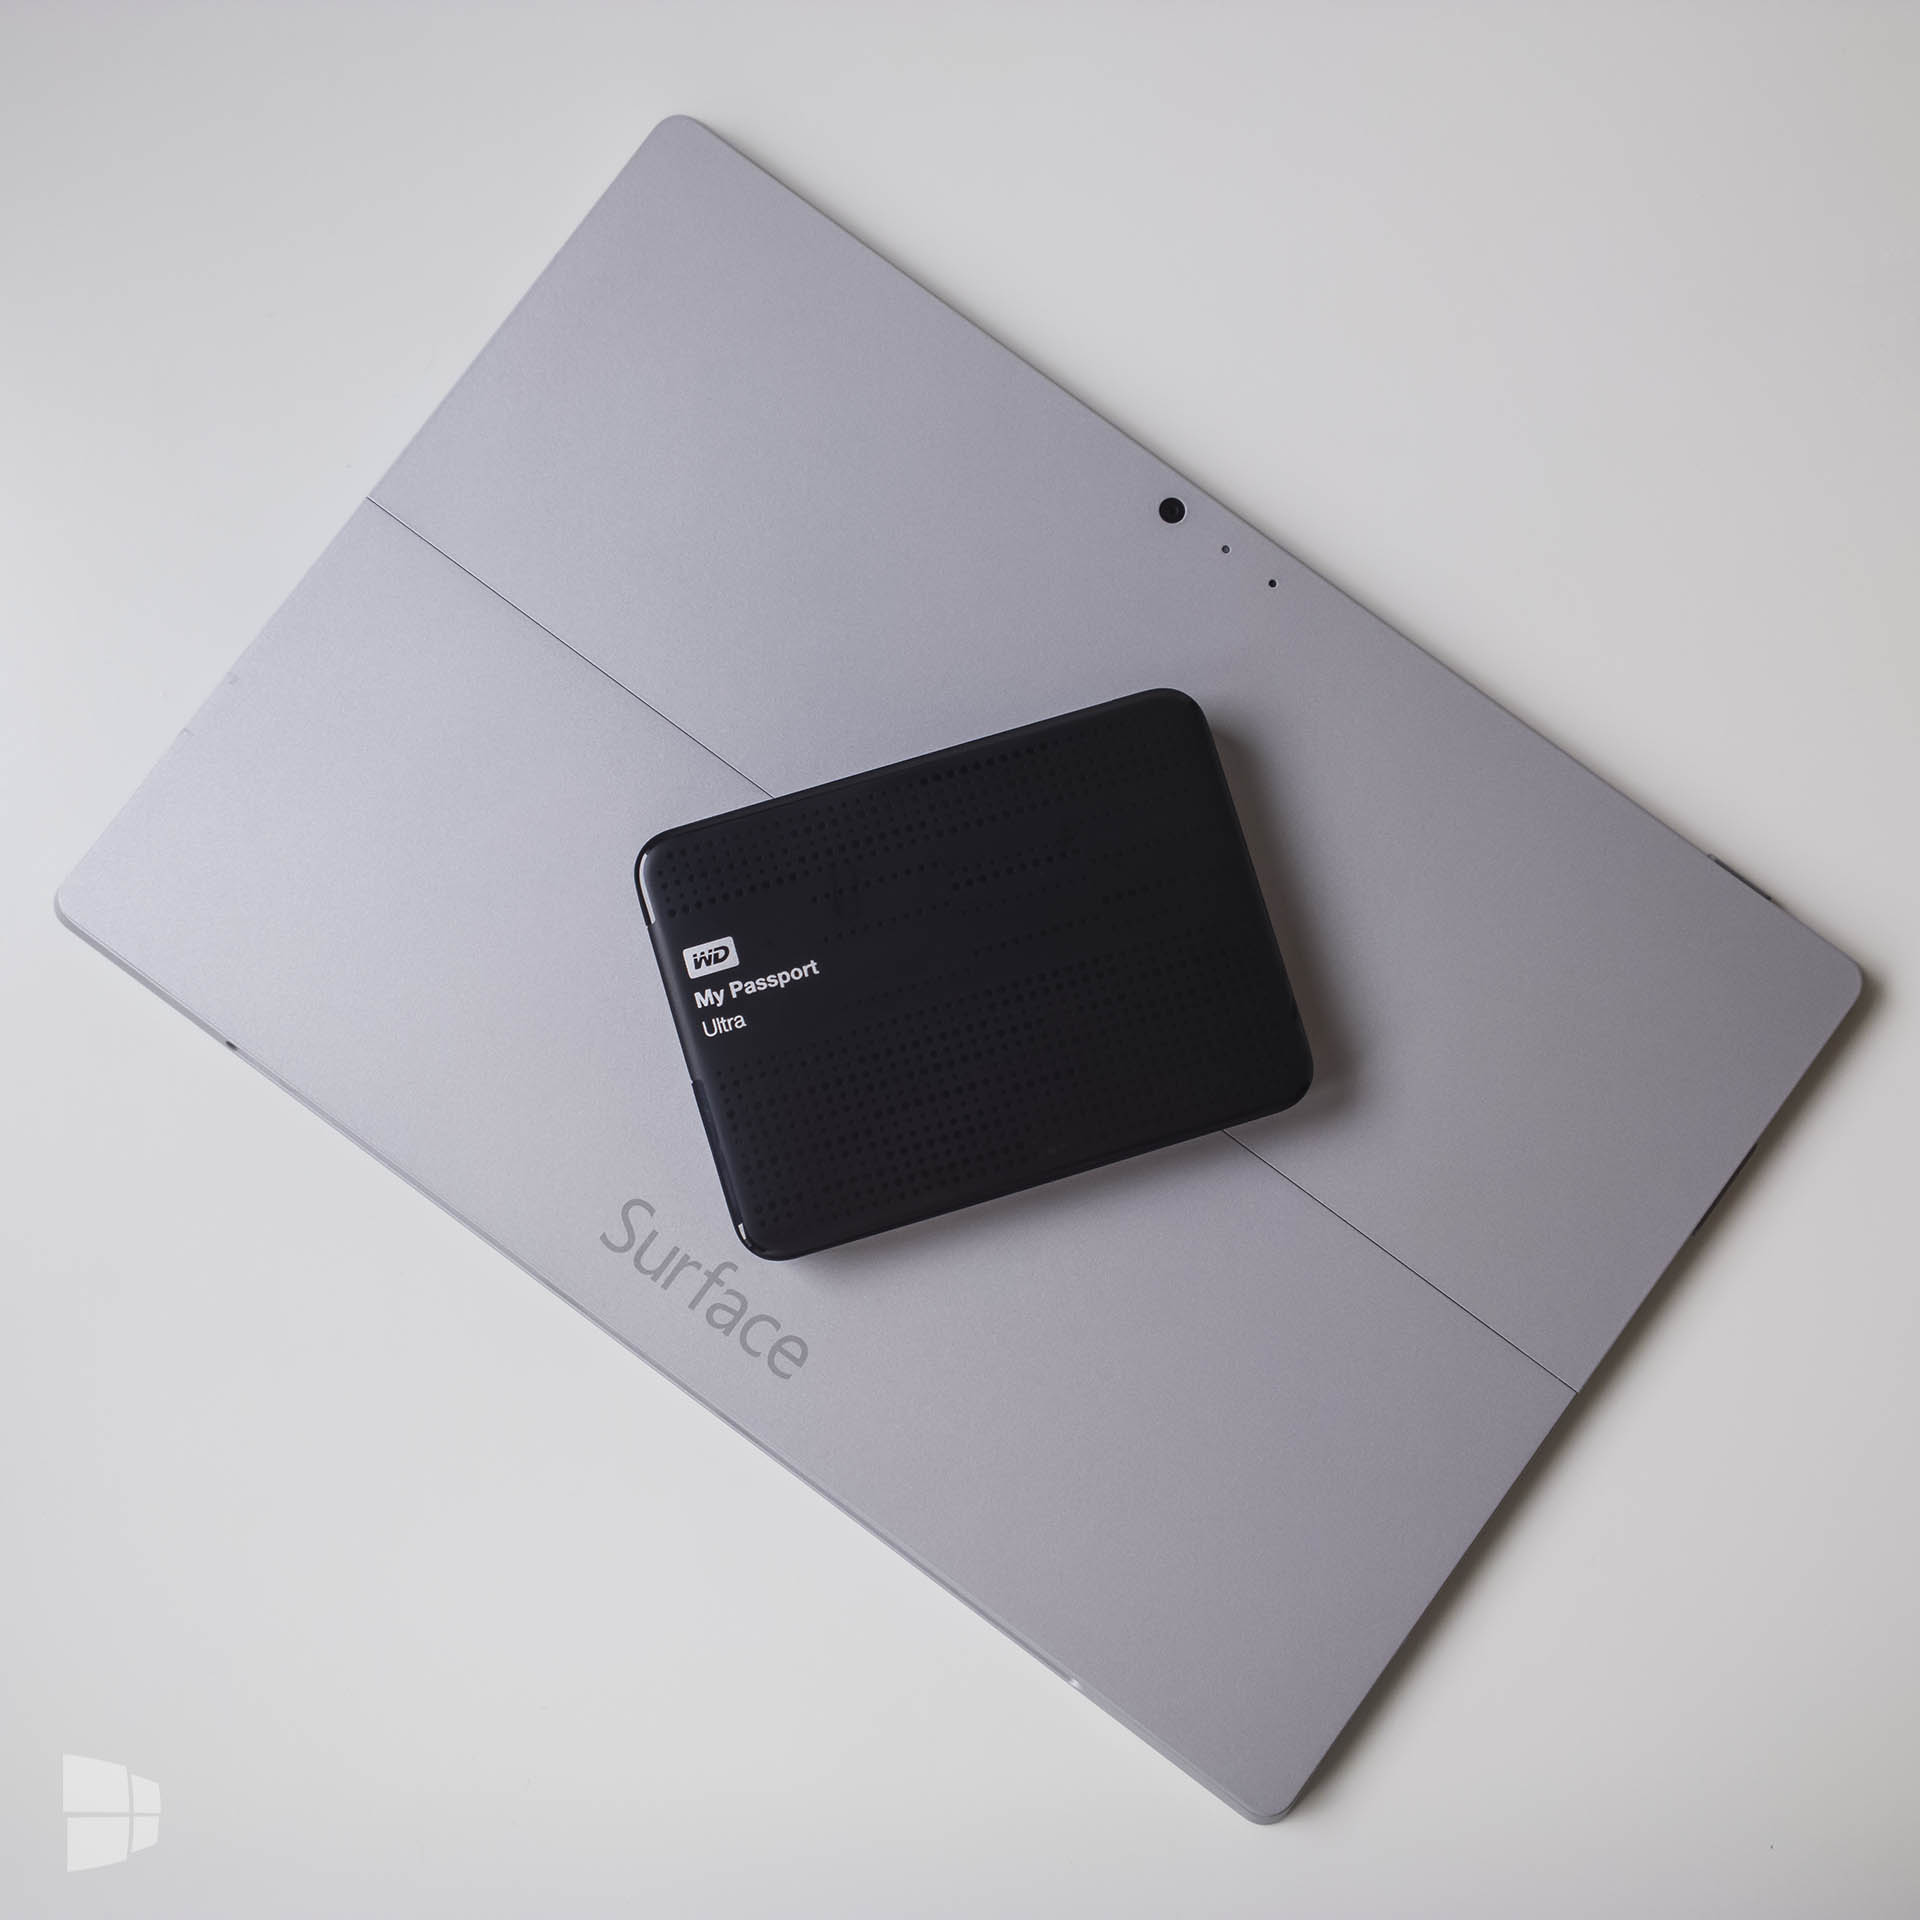 WD My Passport Ultra 1TB Surface Pro 3 (2)